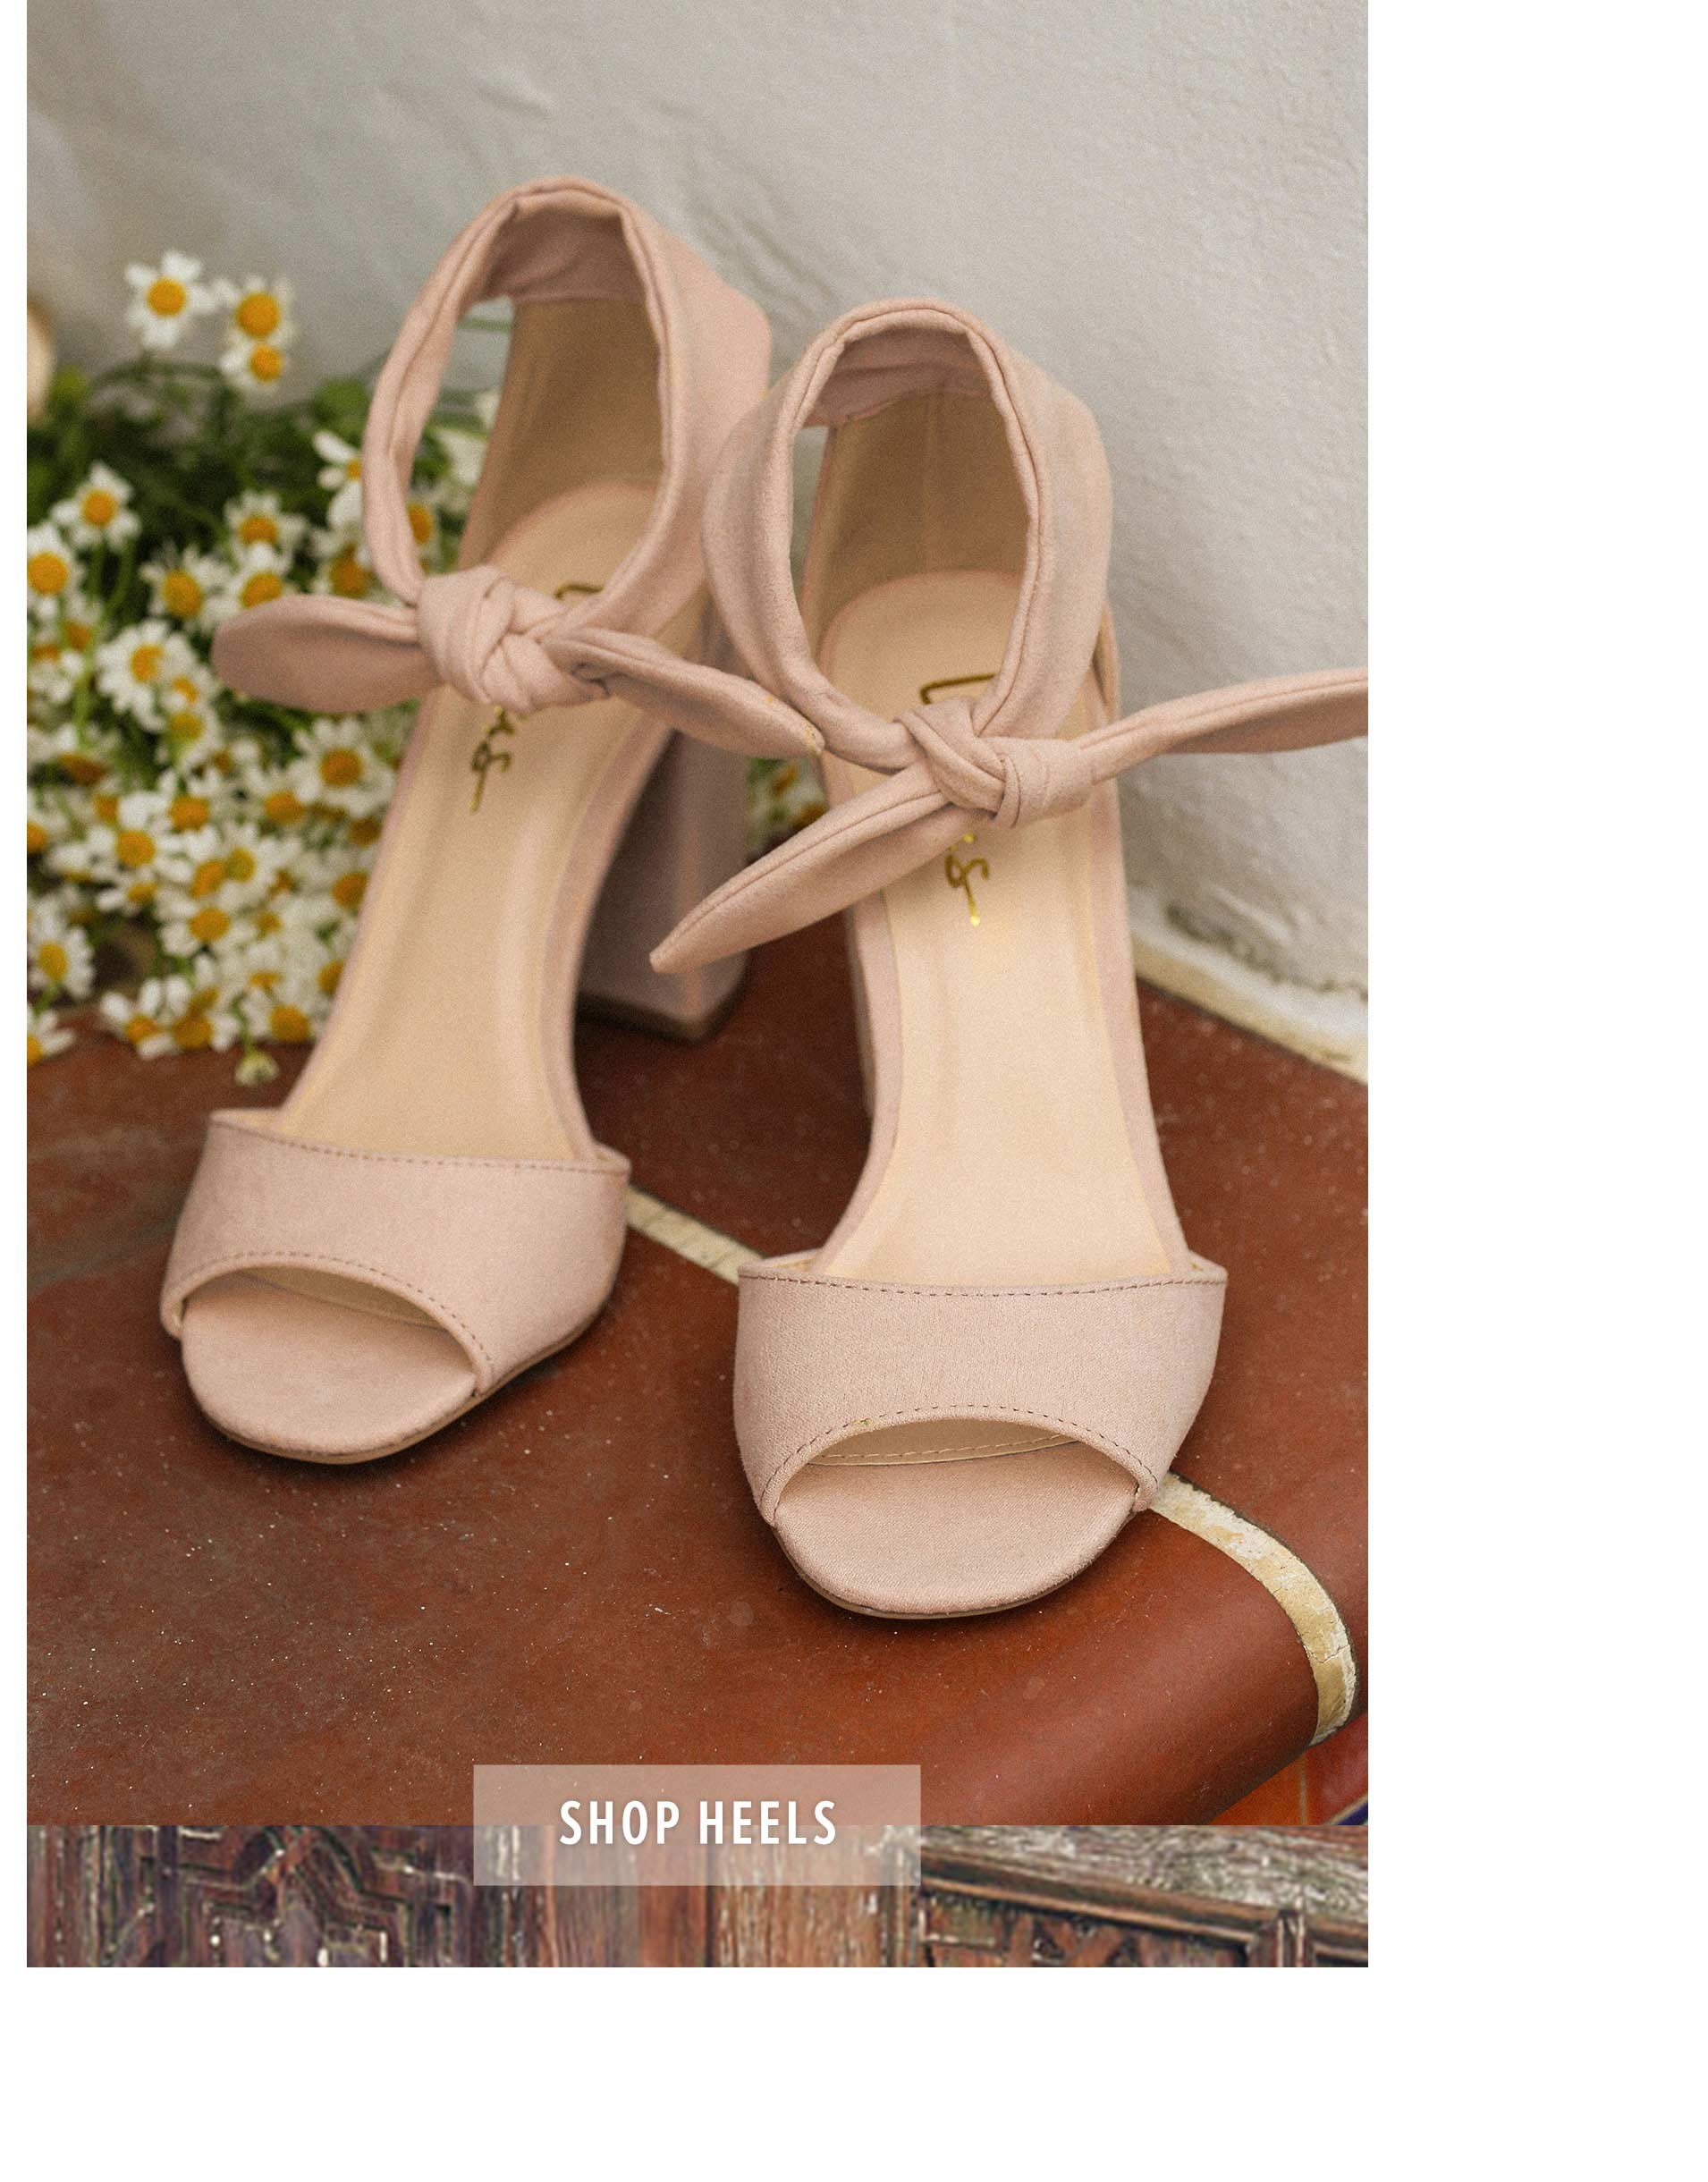 ... dress feminine display of pale pink heels with bow 88cb240b4ccb